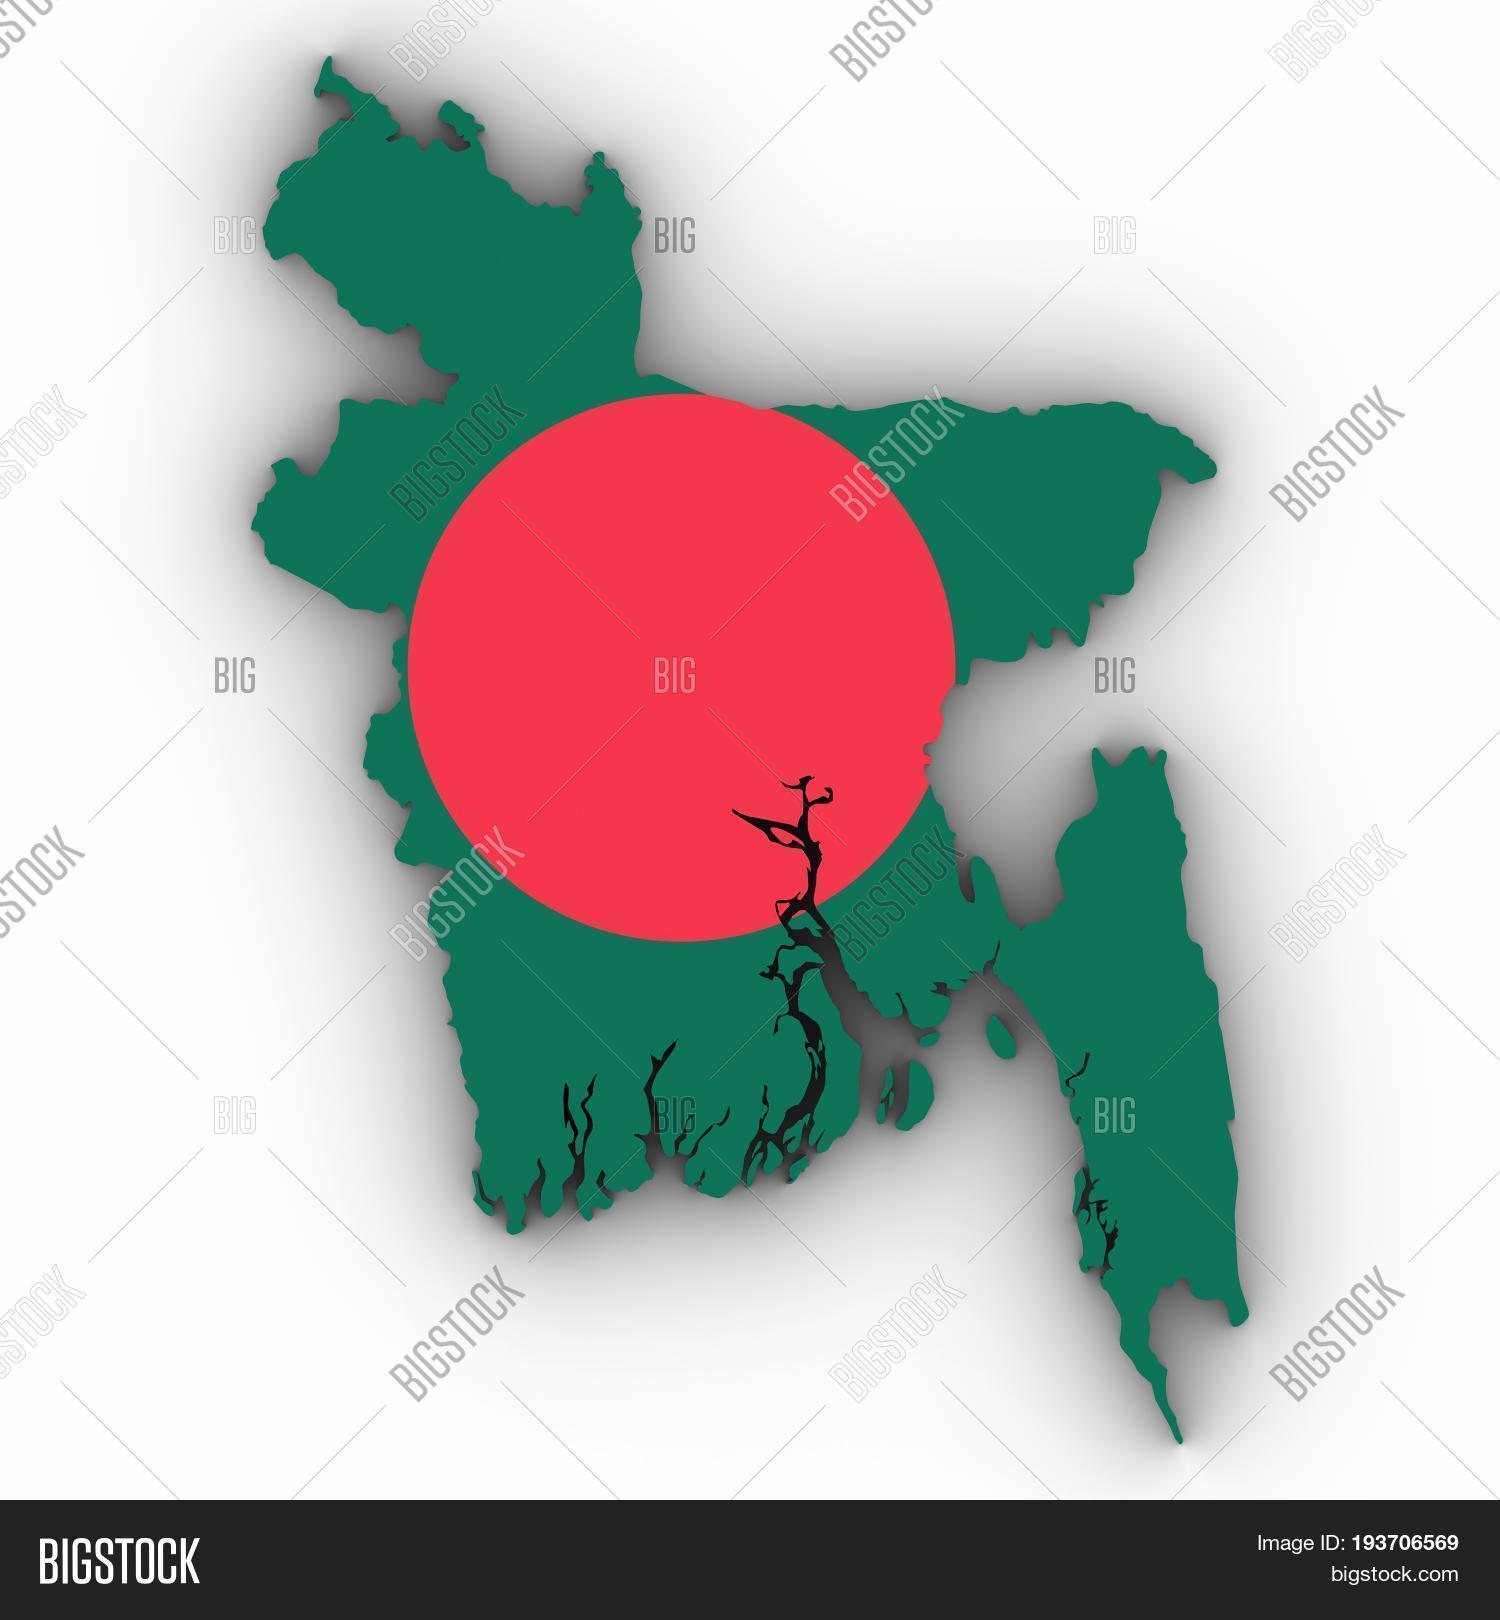 Bangladesh Map Outline Image Photo Free Trial Bigstock